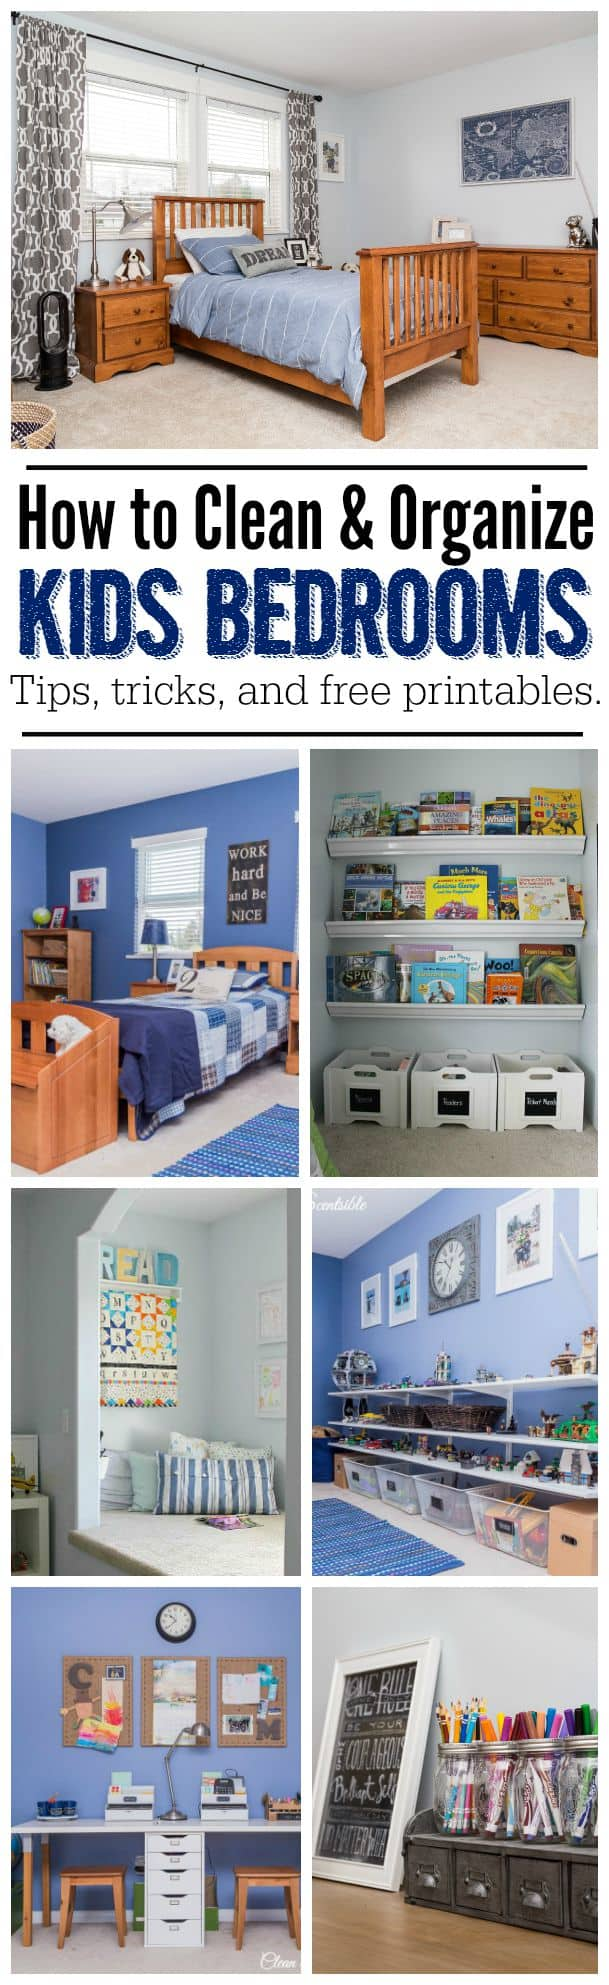 How-to-Clean-and-Organize-Kids-Bedrooms